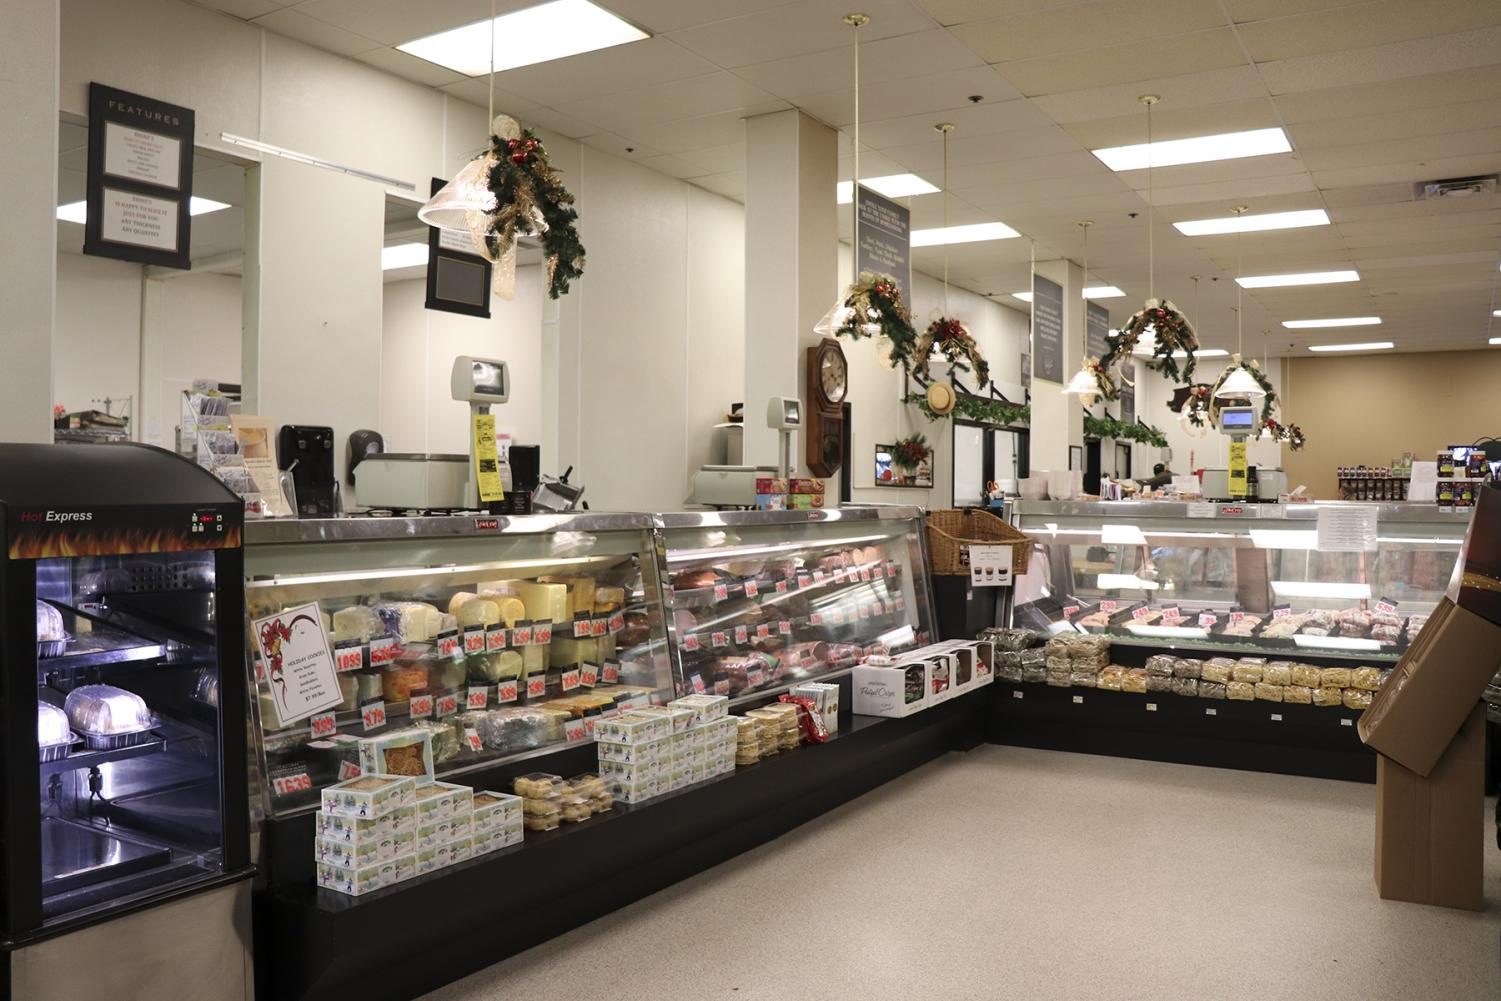 Inside+of+Brines%2C+the+market+and+deli+gives+customers+a+large+selection+of+foods.